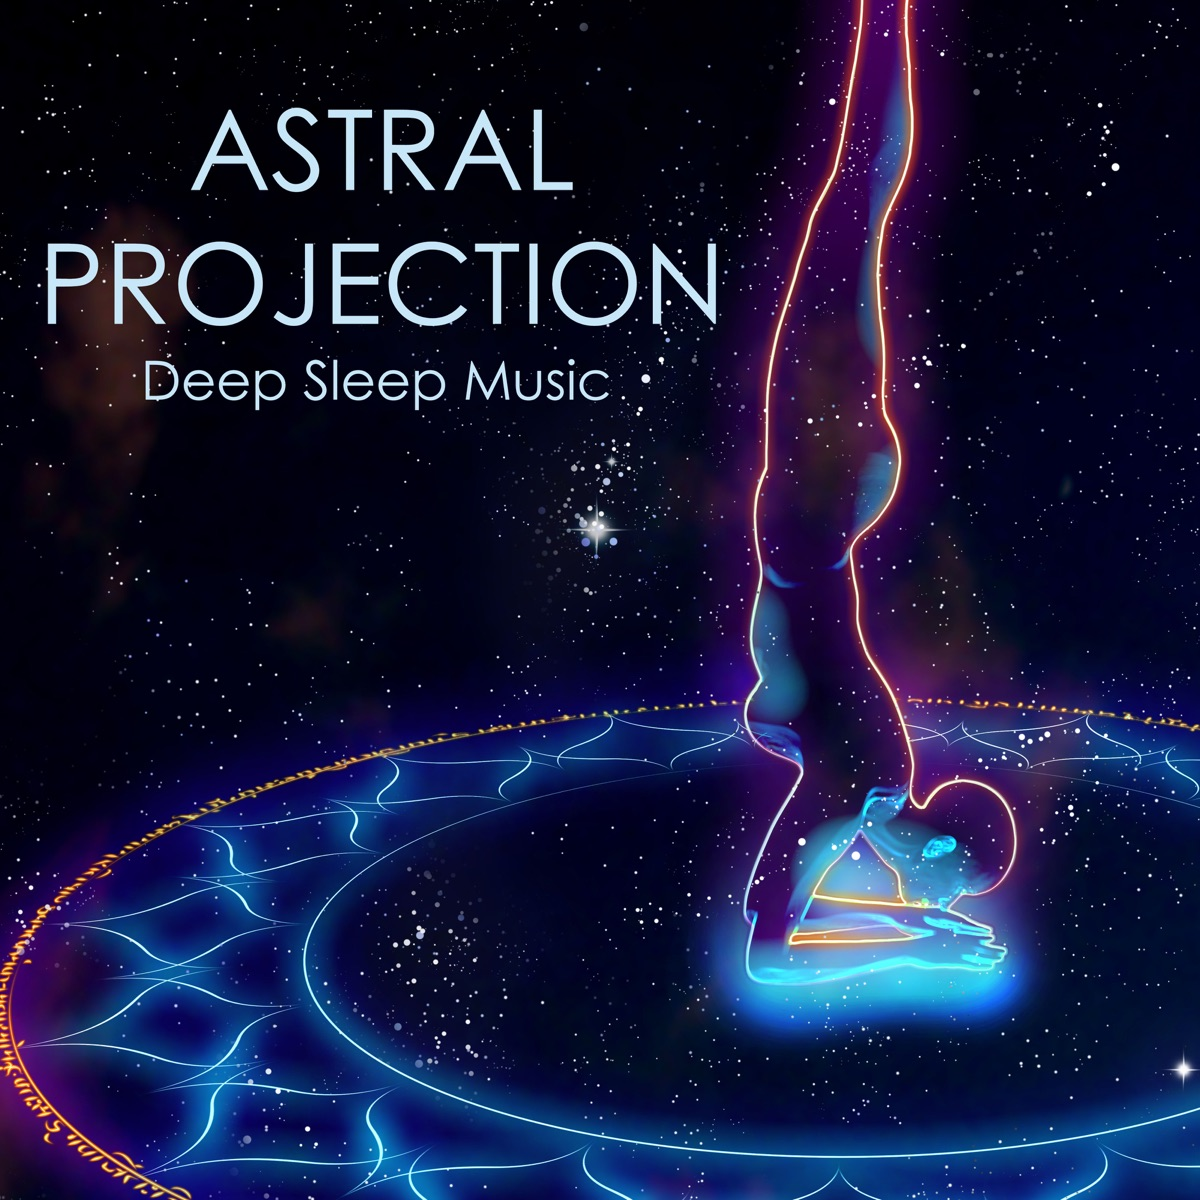 Astral Projection - Deep Sleep Music, 432Hz Delta Waves for Lucid